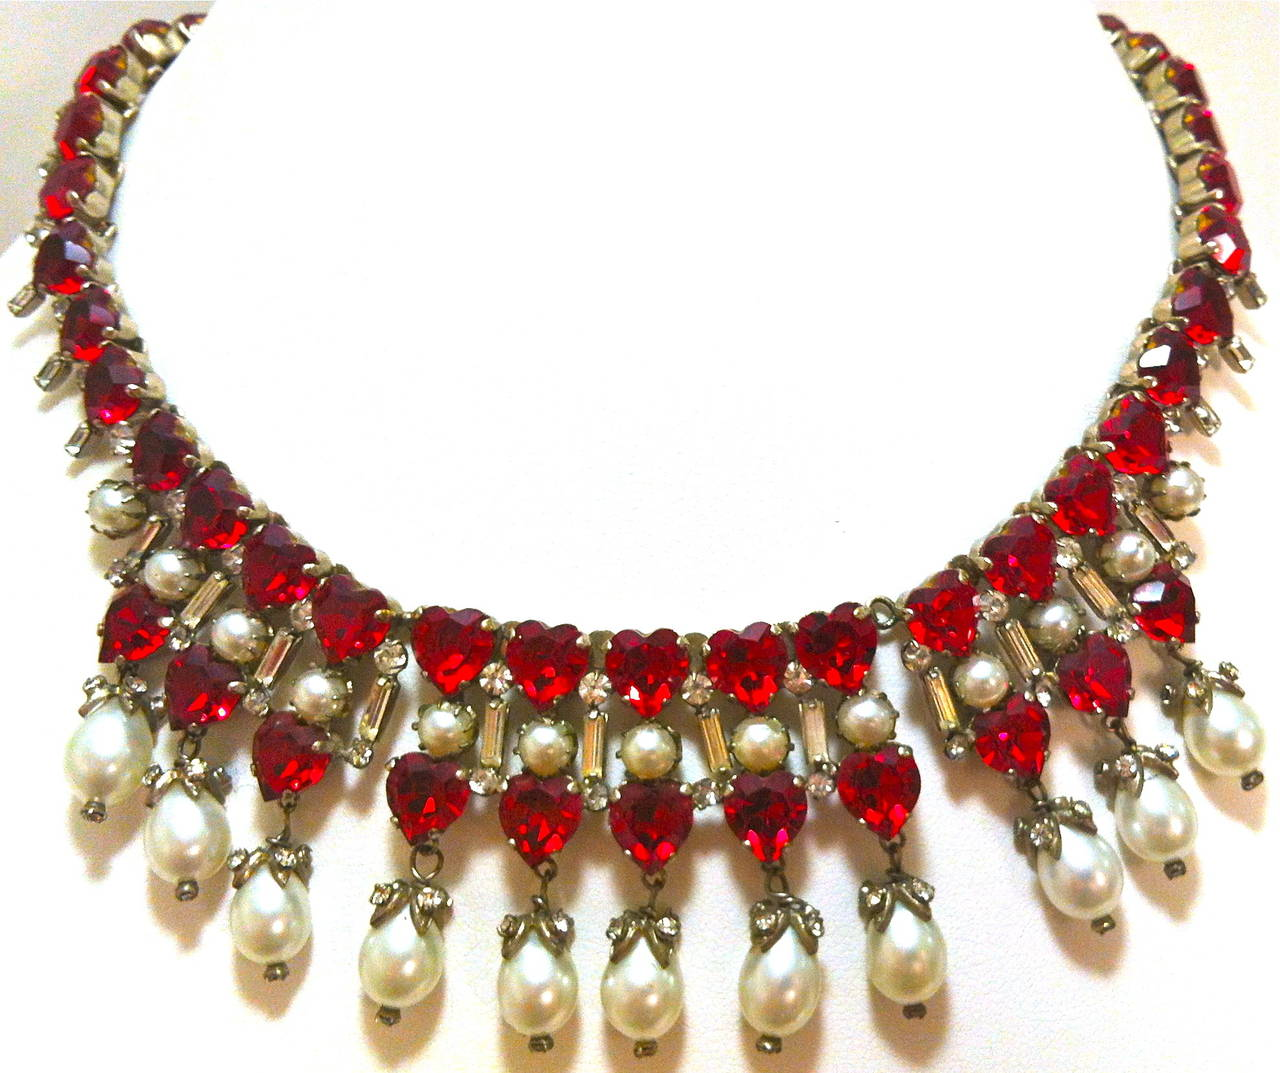 1950s Roger Jean Pierre for Christian Dior Necklace 2